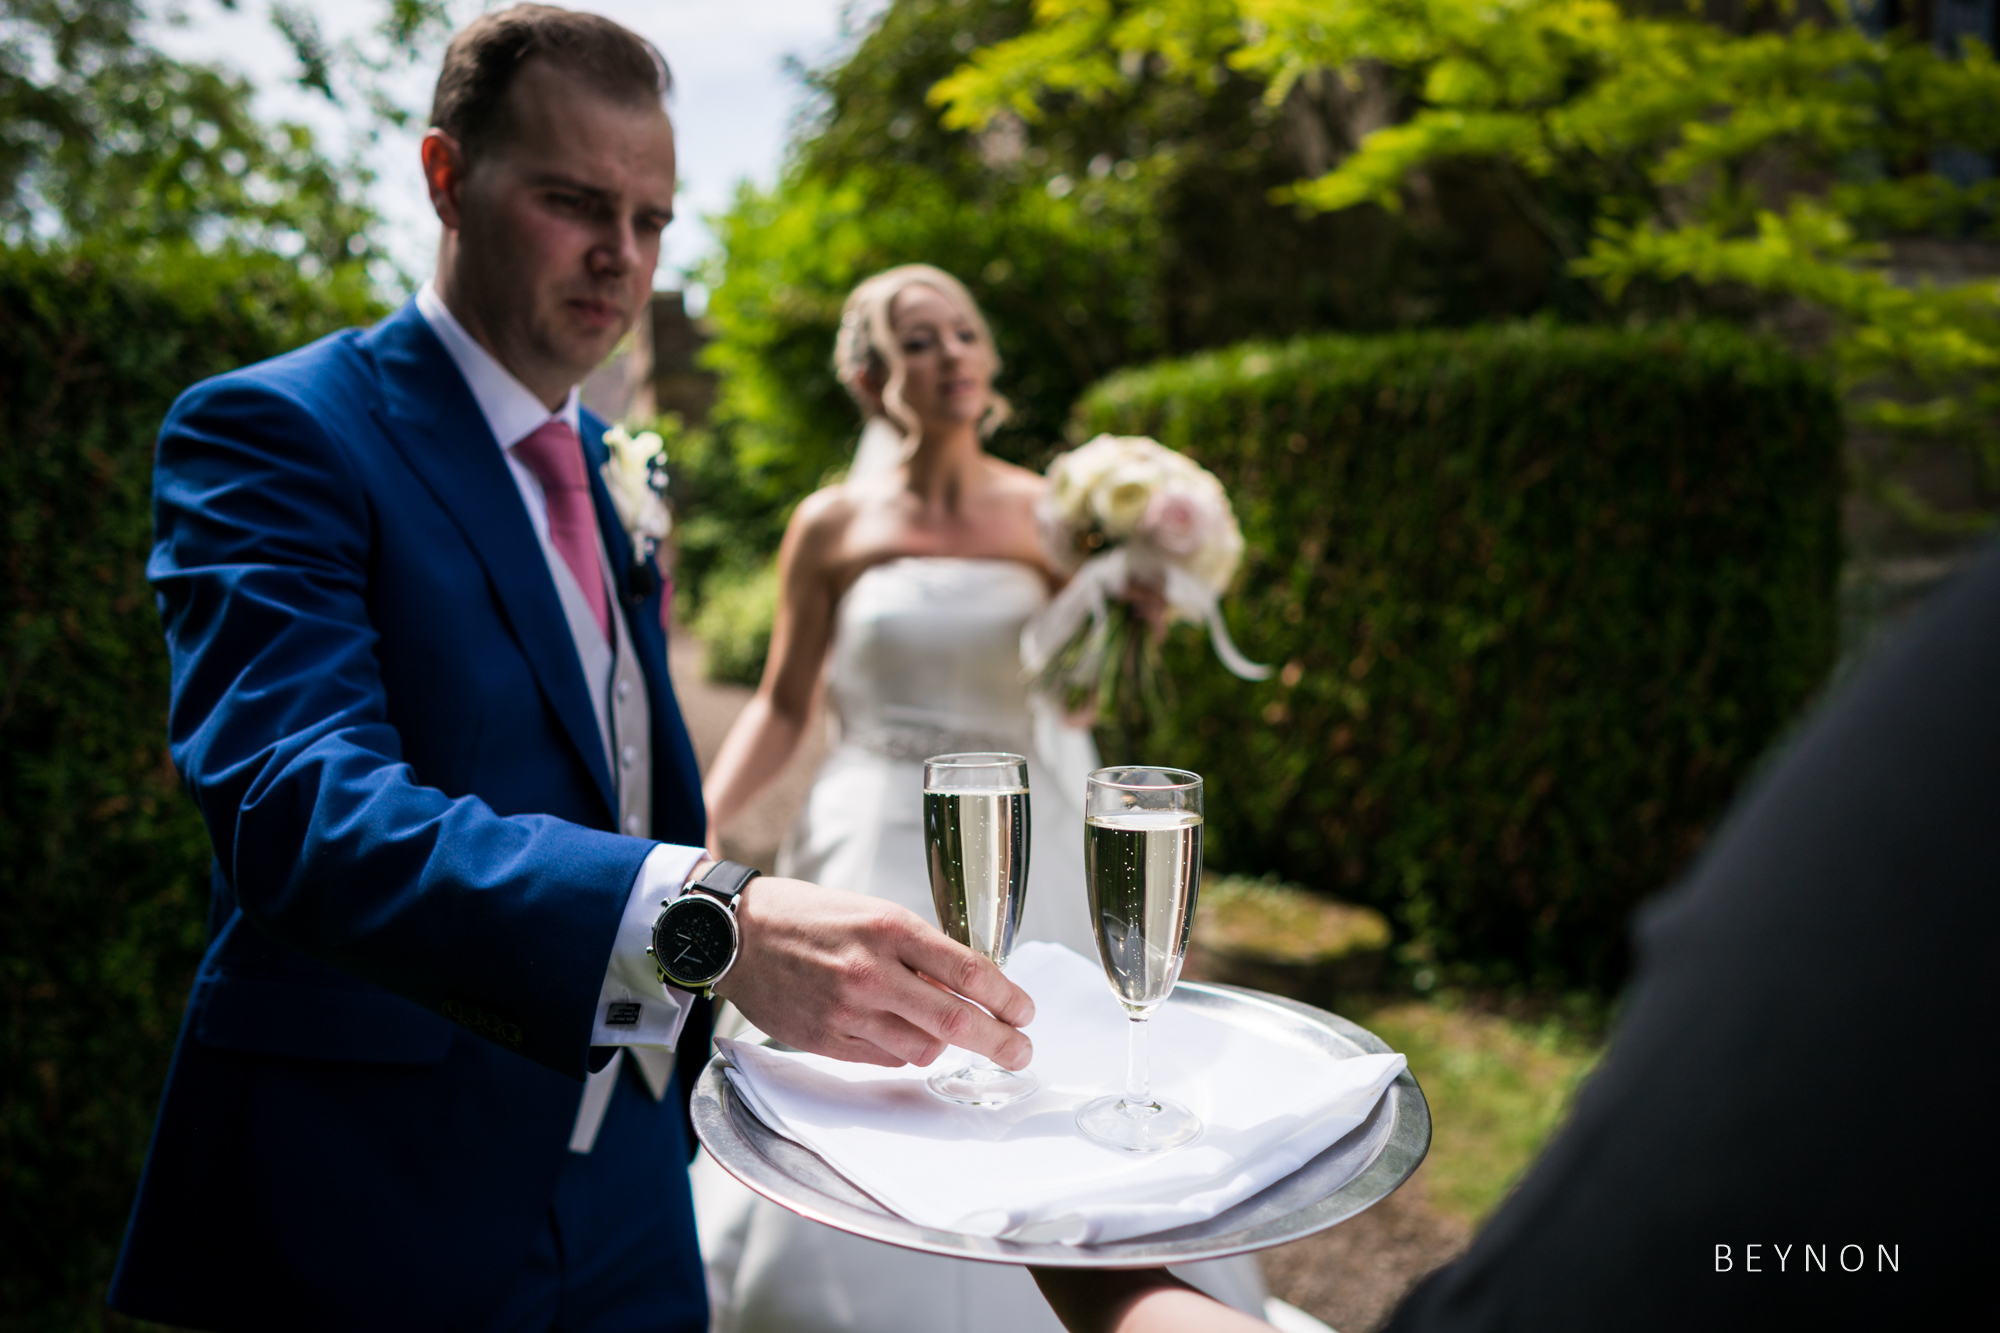 The bride and groom pick up their post-ceremony champagne